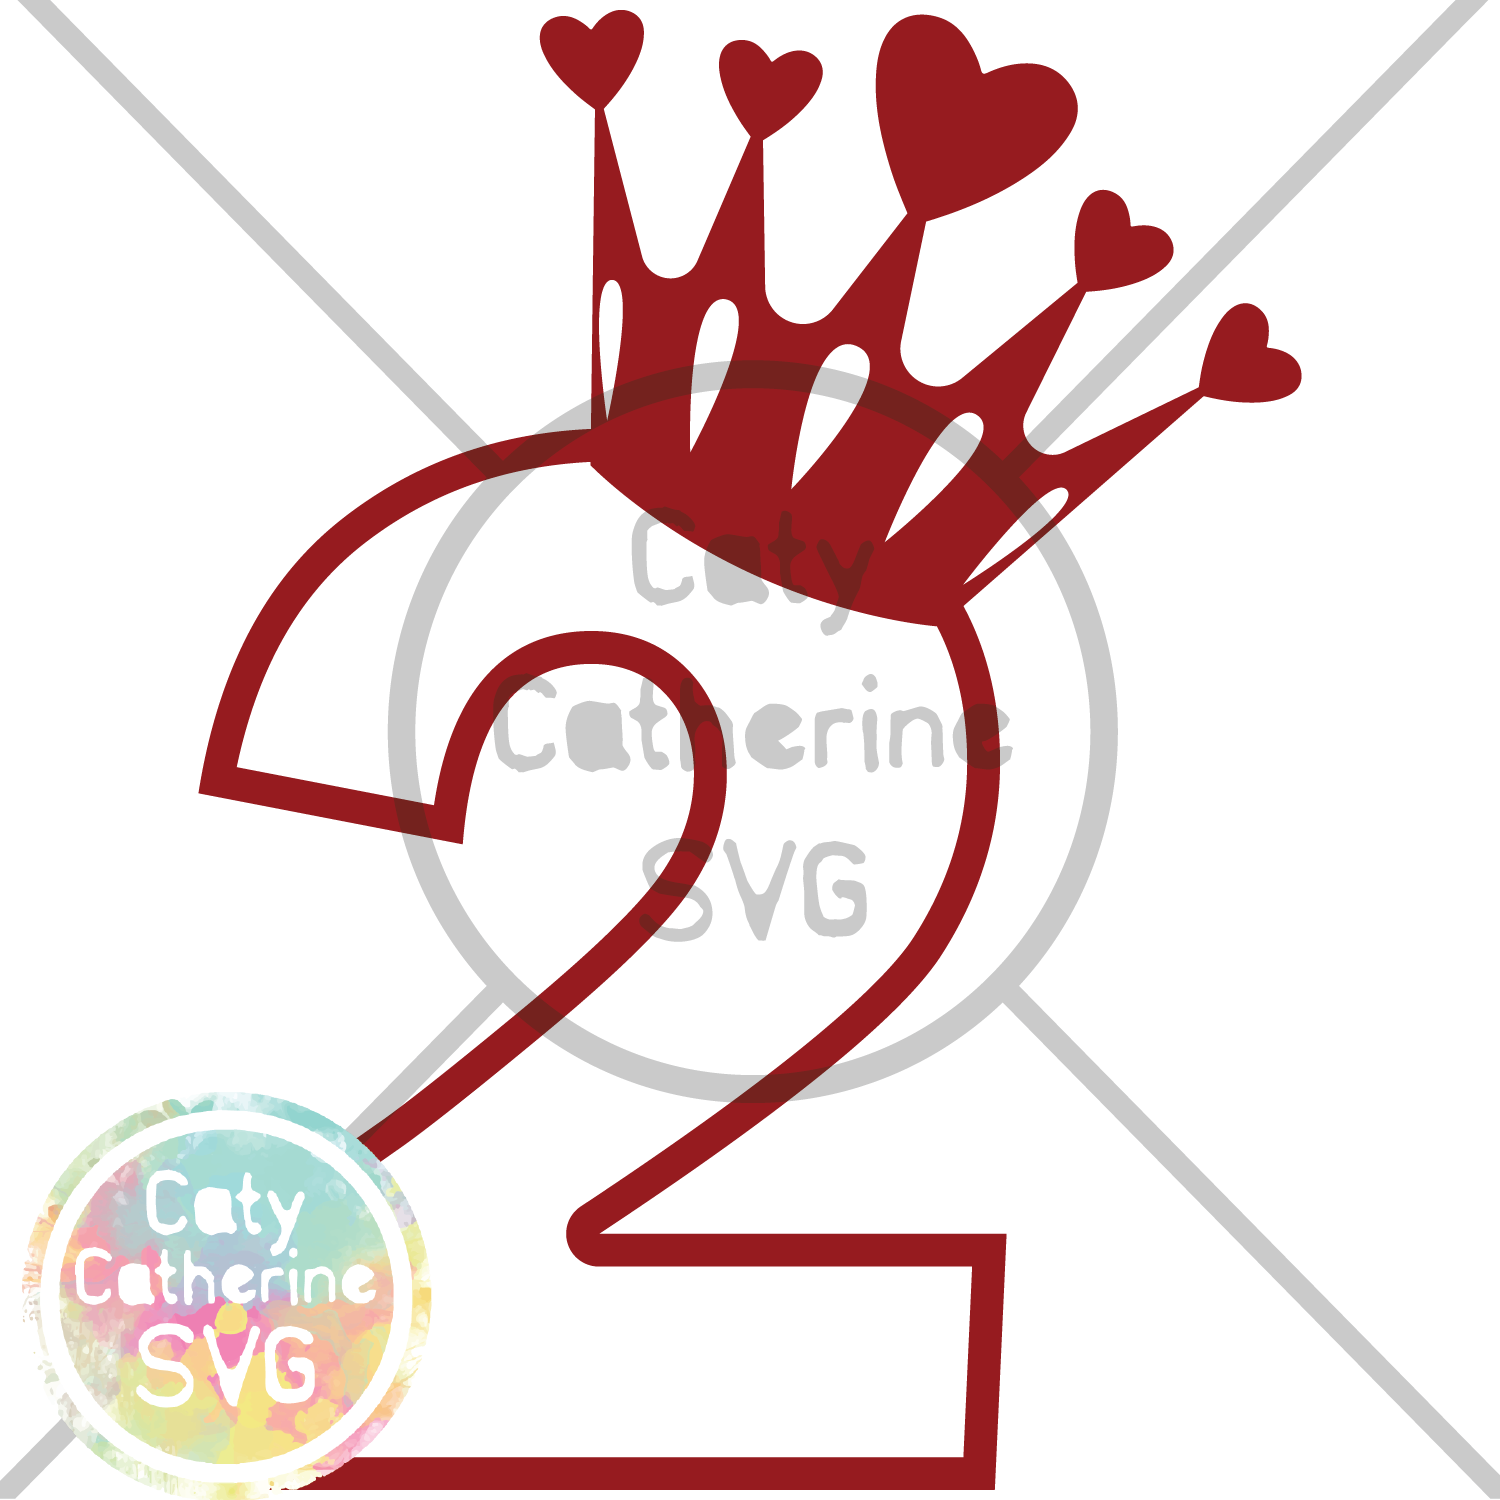 2 svg hearts. Two years old